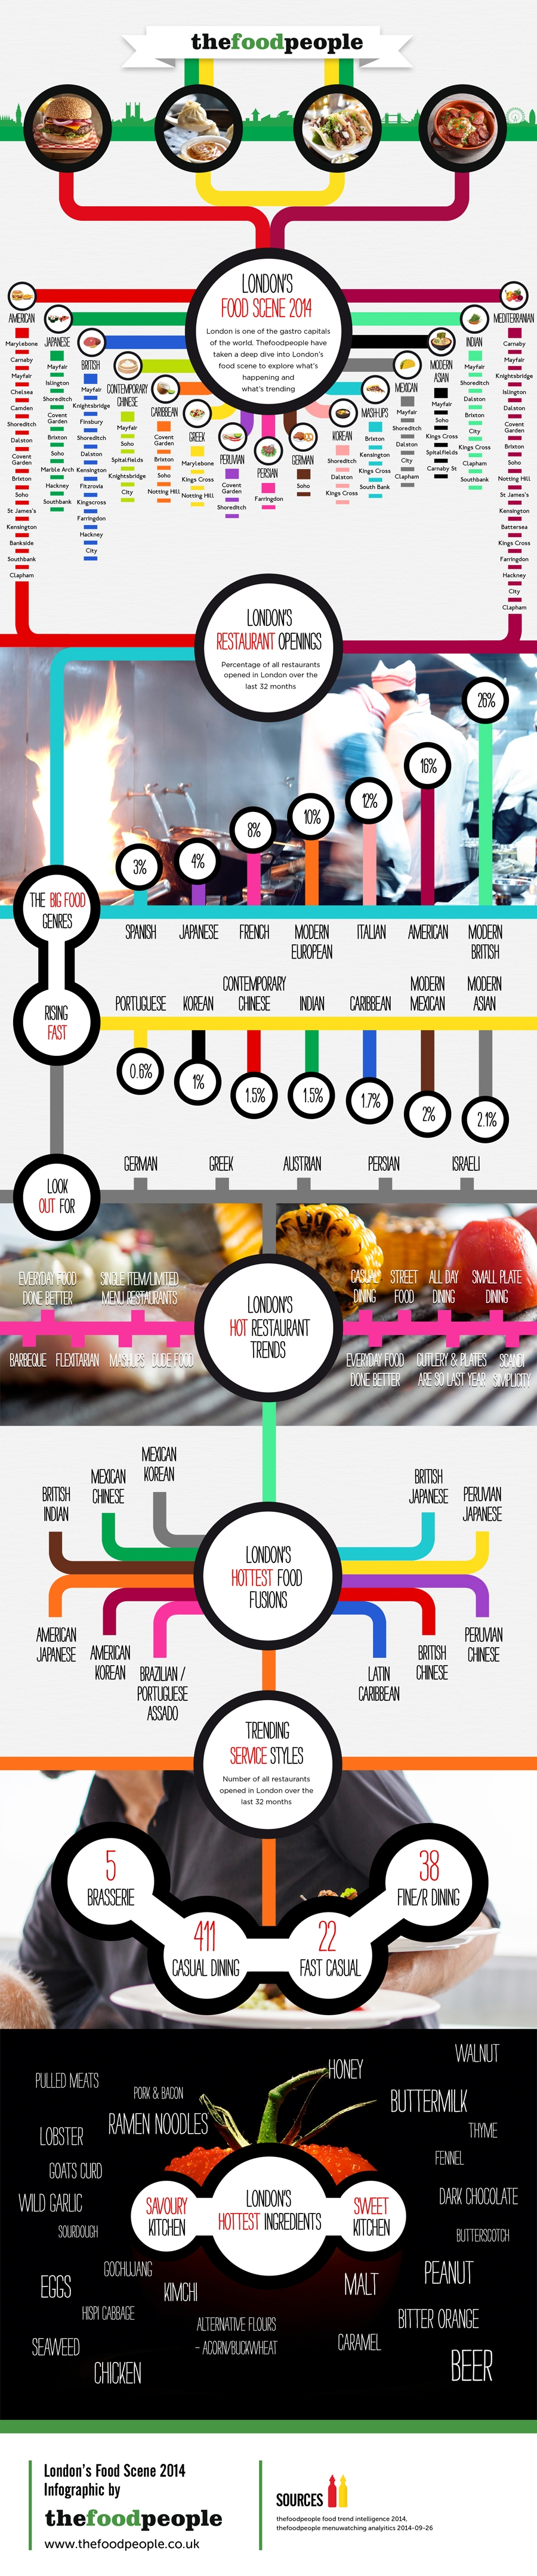 London food trends infographic